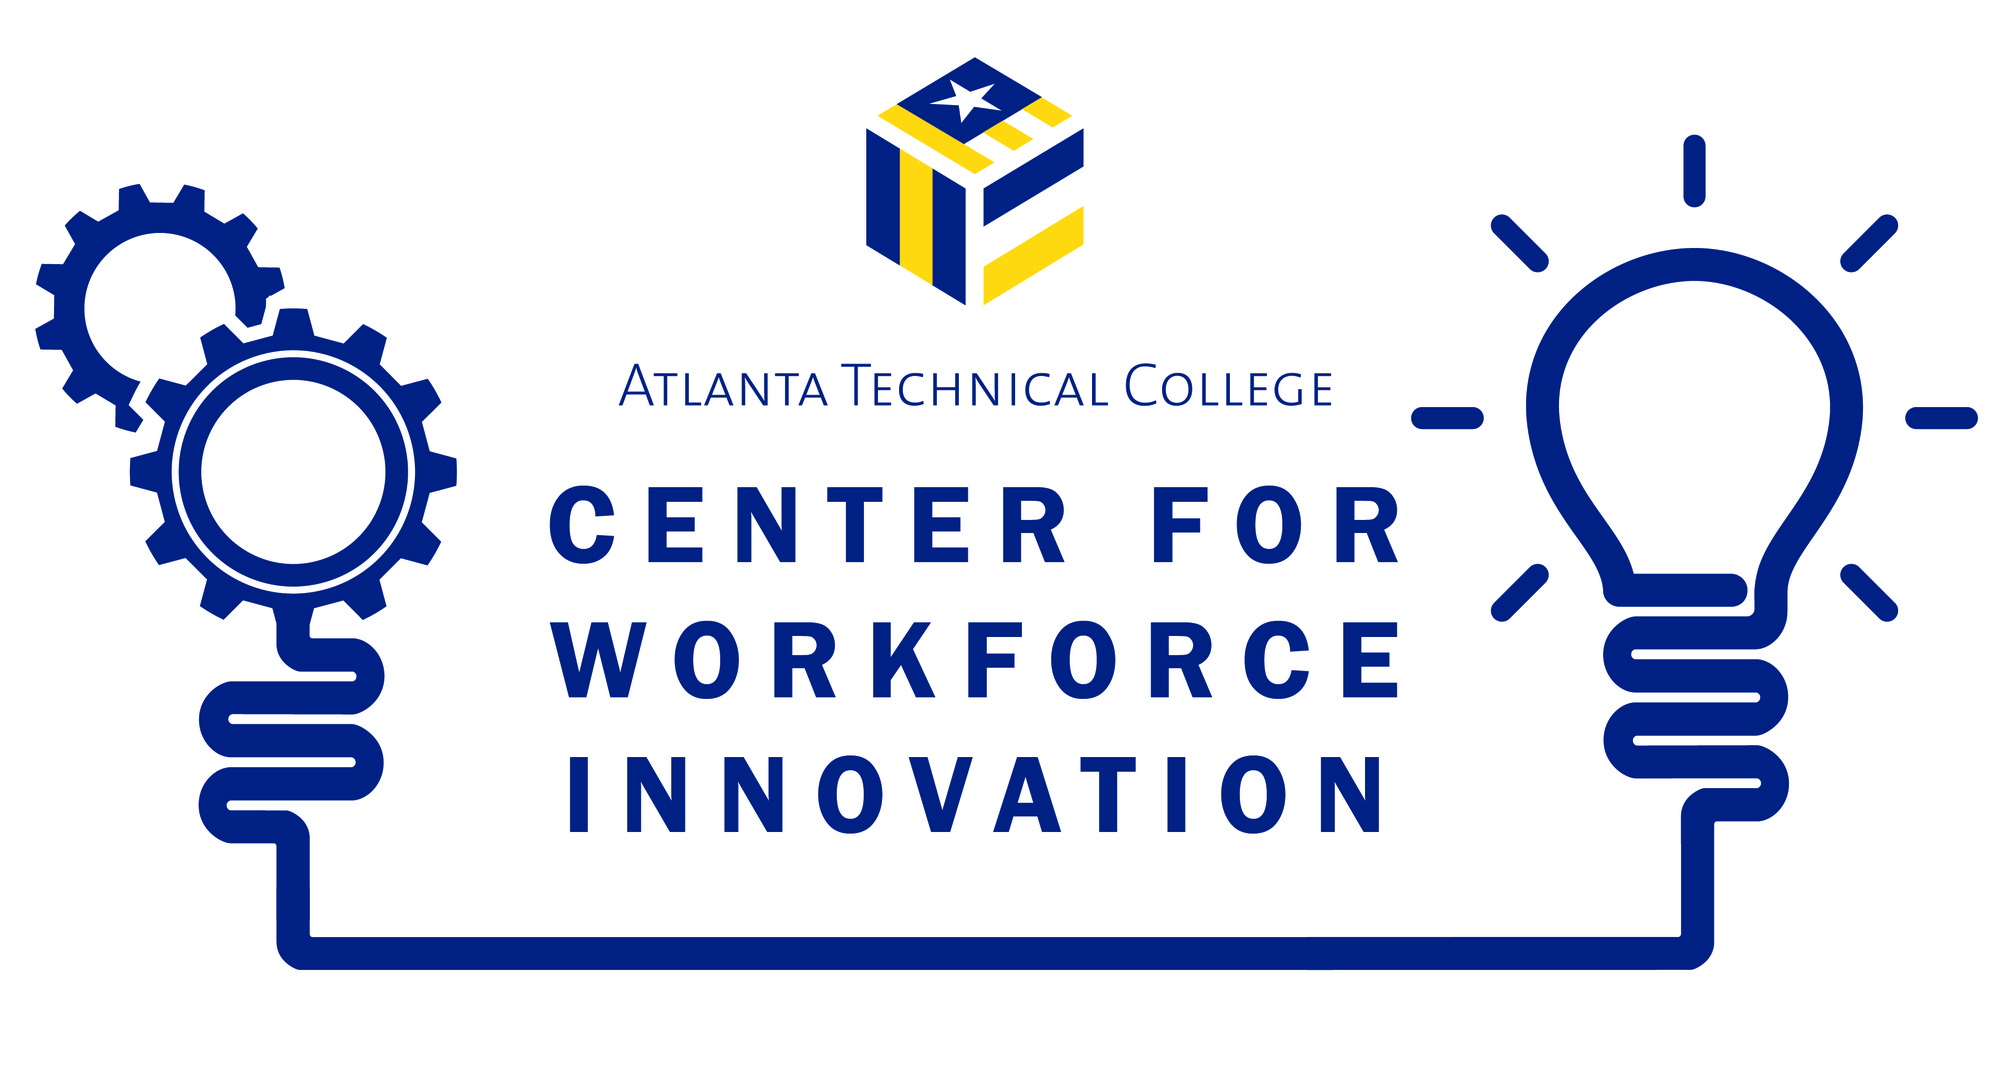 ATC Center For Workforce Innovation